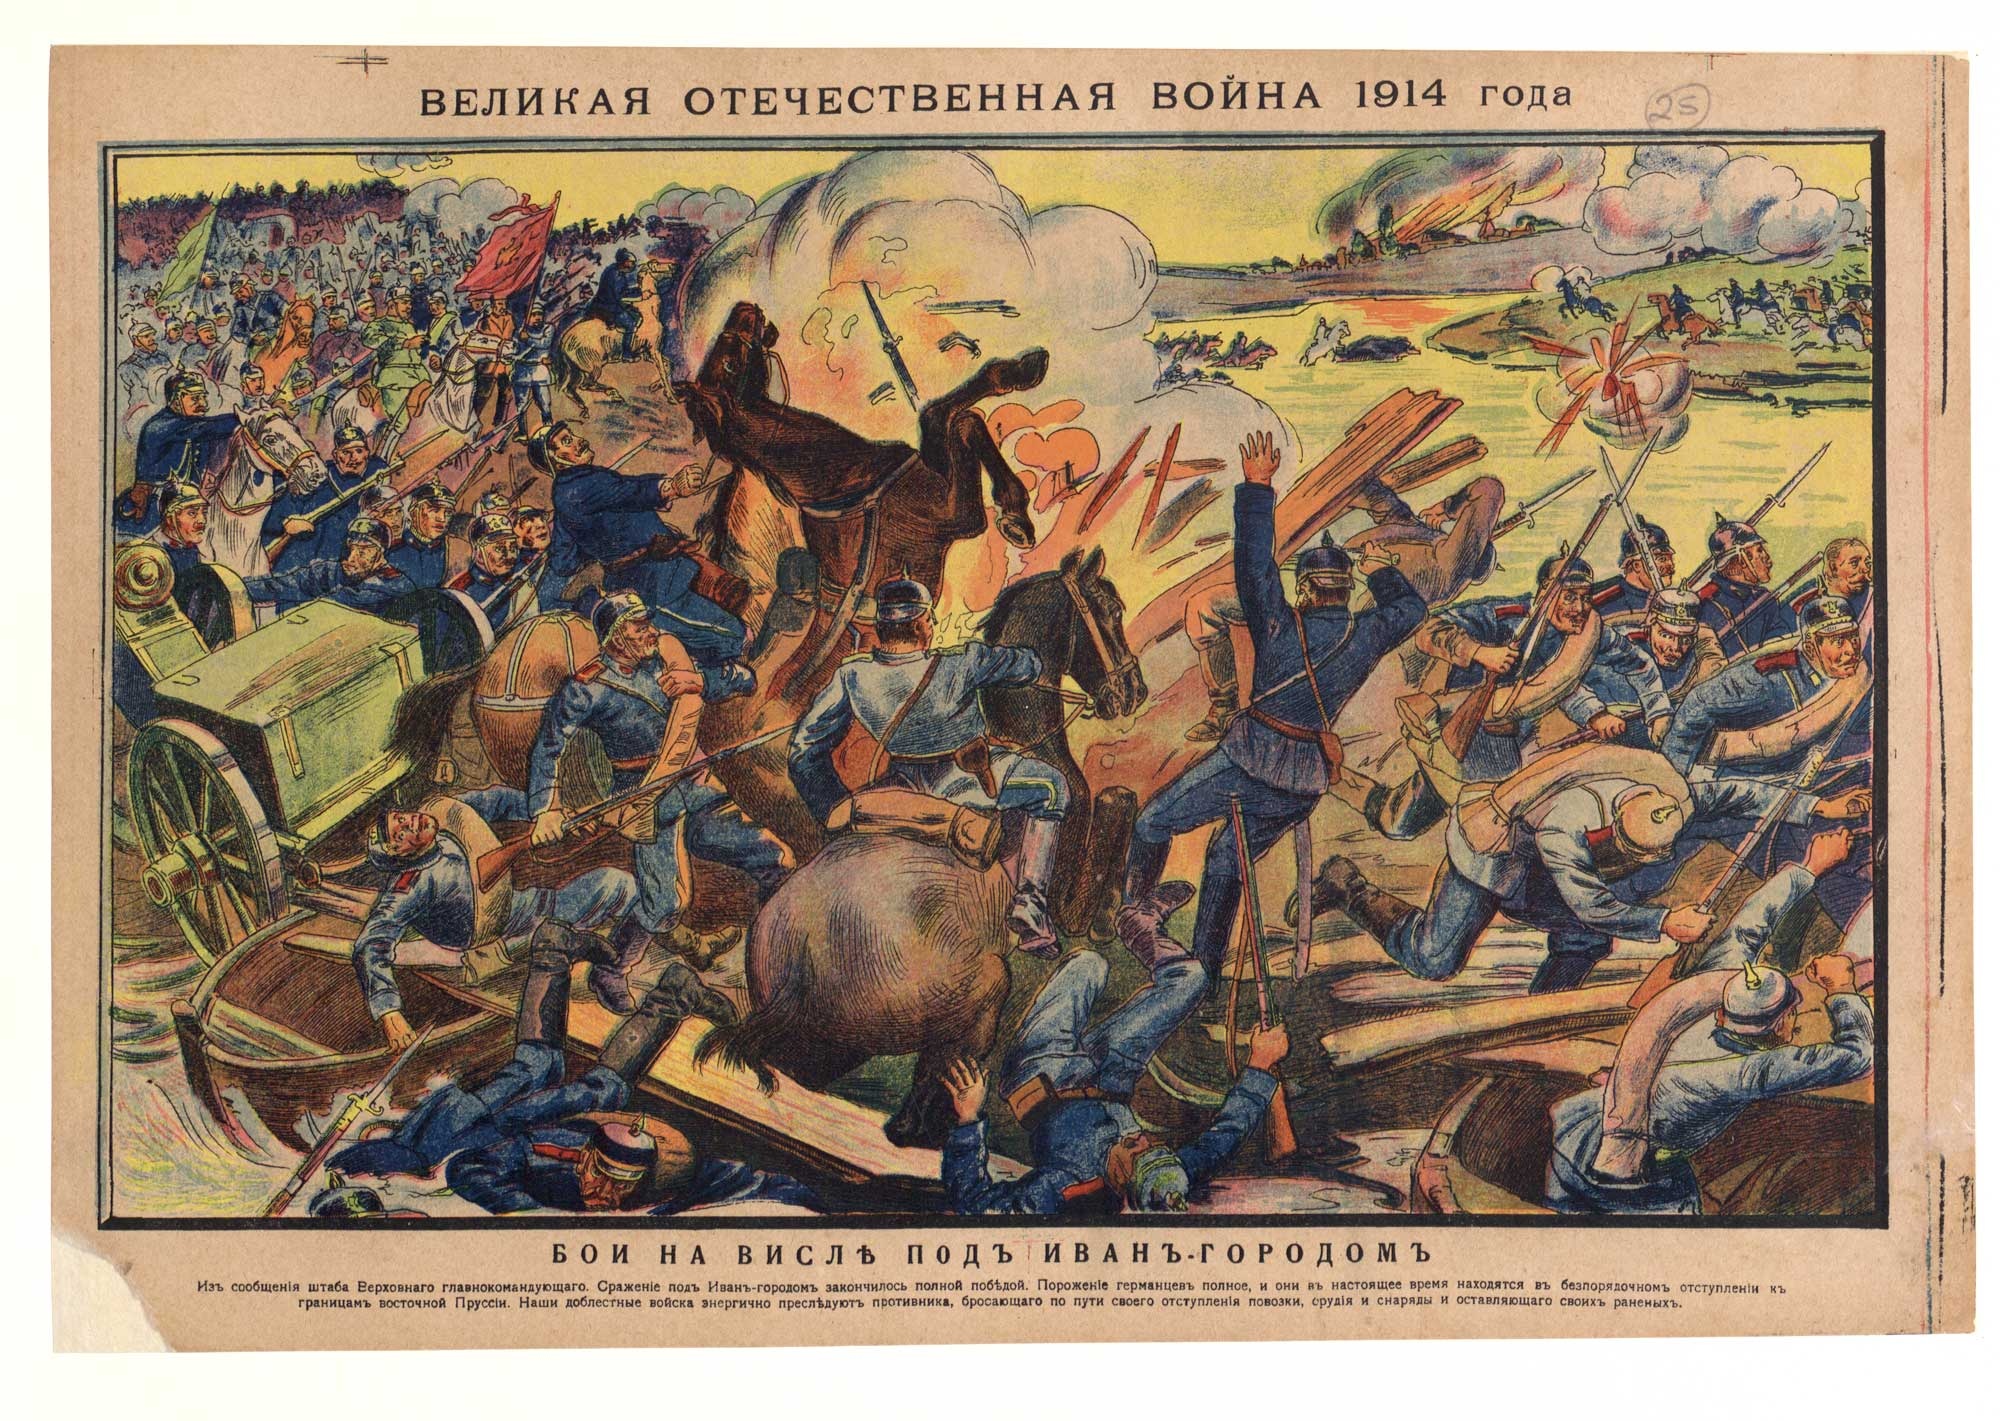 The Great Patriotic War of 1914